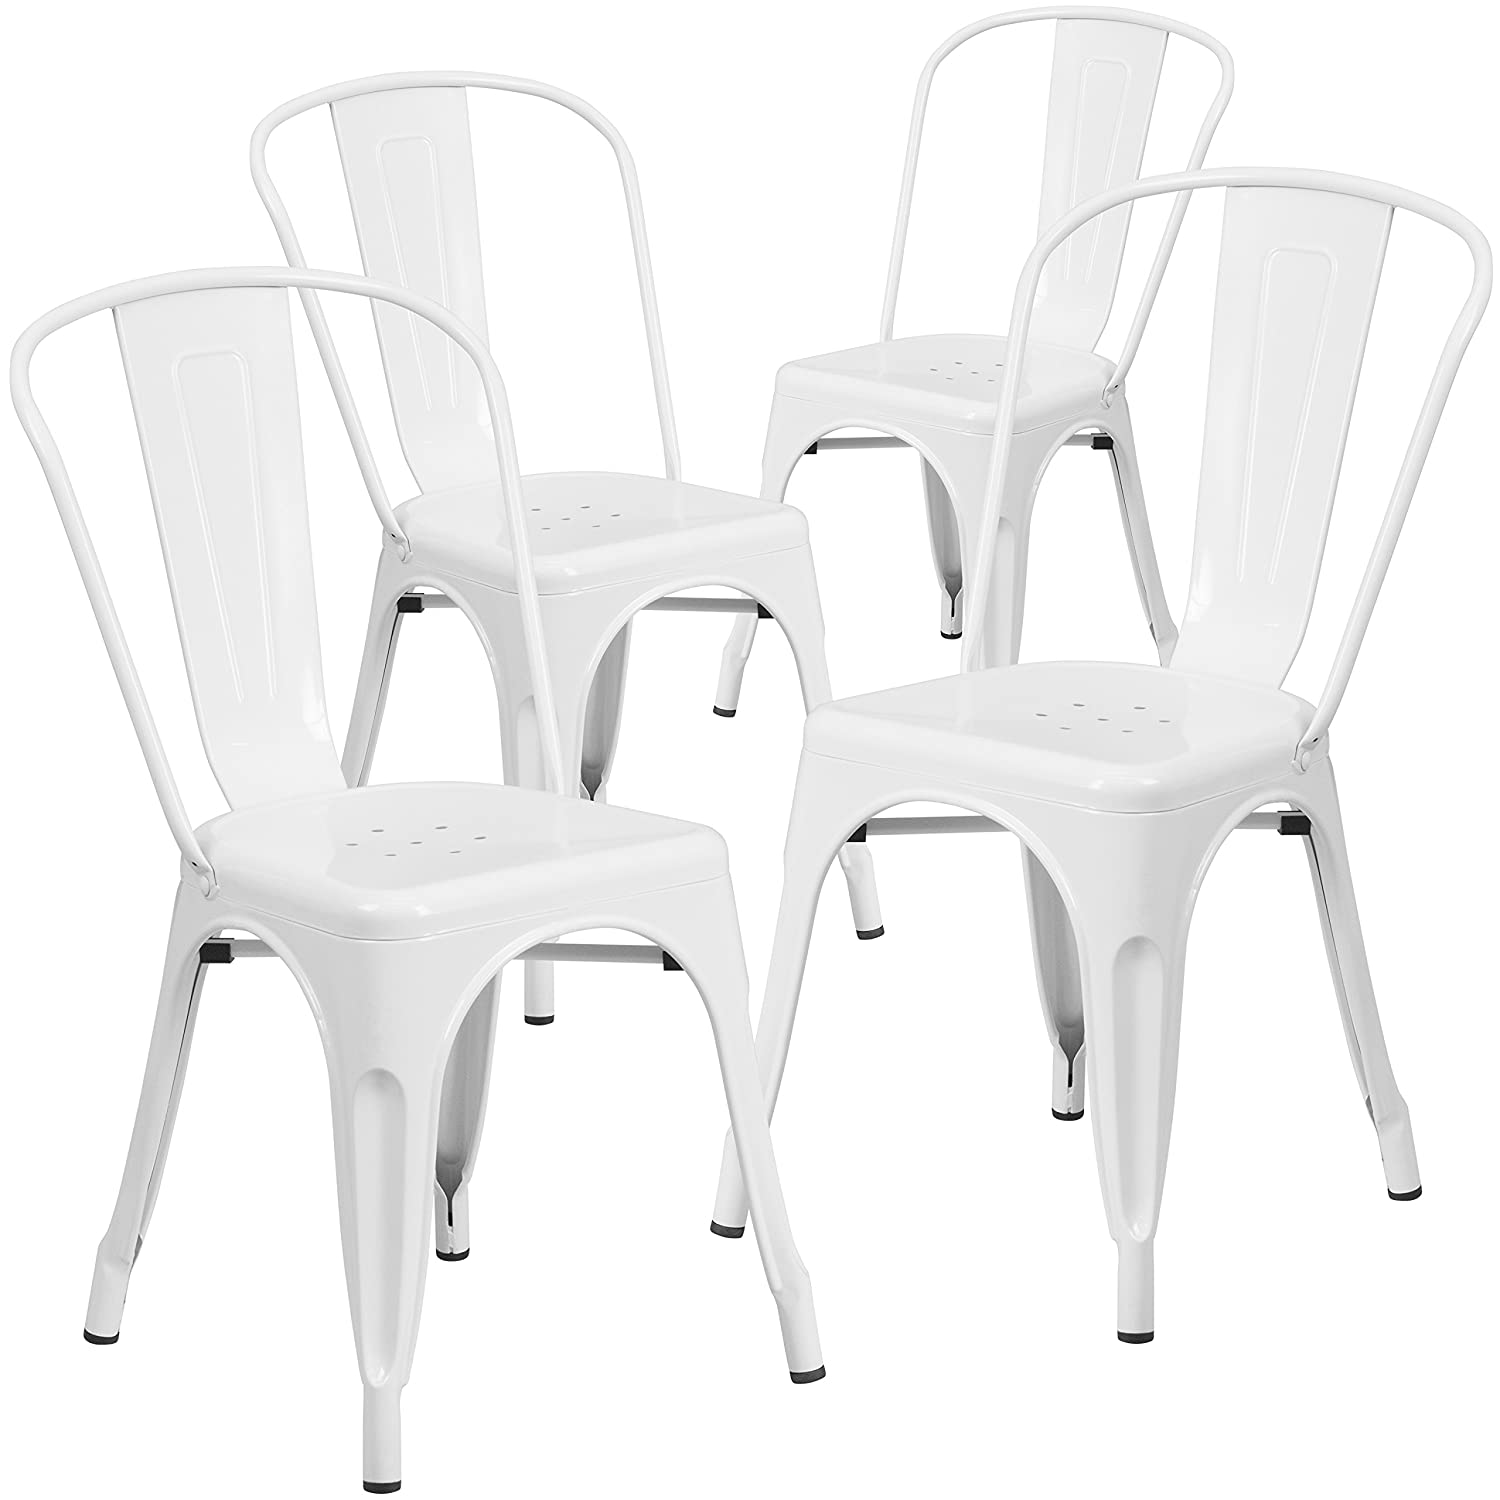 Amazon com flash furniture 4 pk white metal indoor outdoor stackable chair kitchen dining